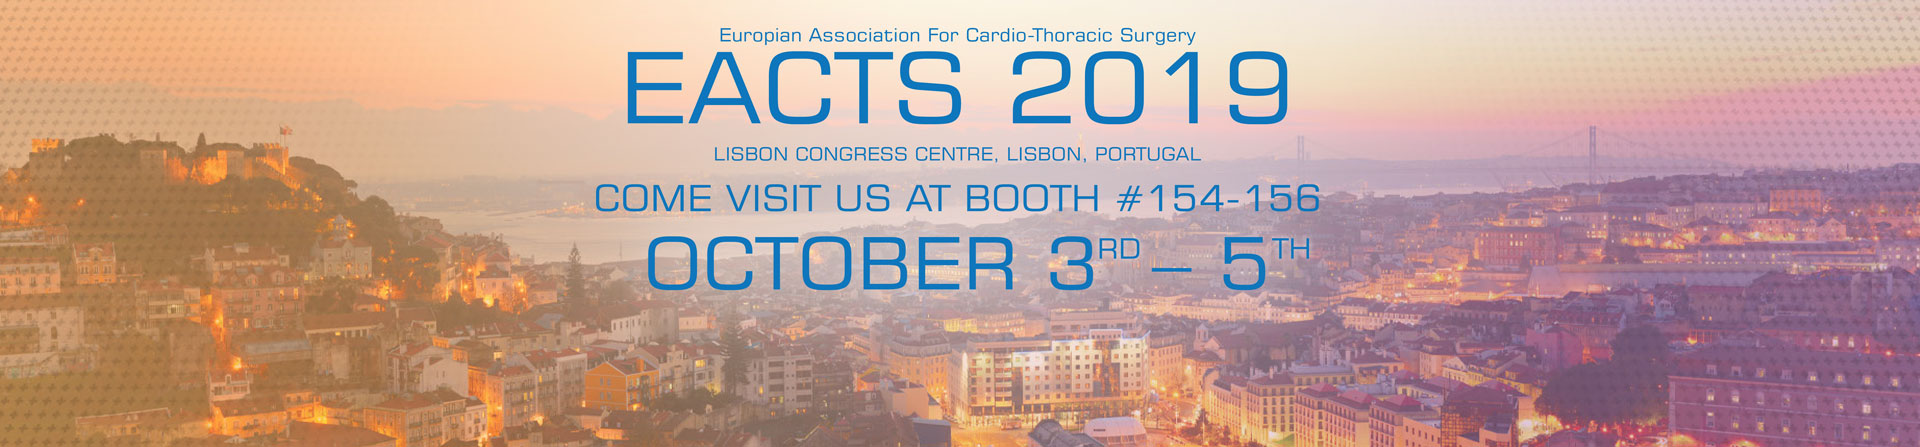 EACTS 2019